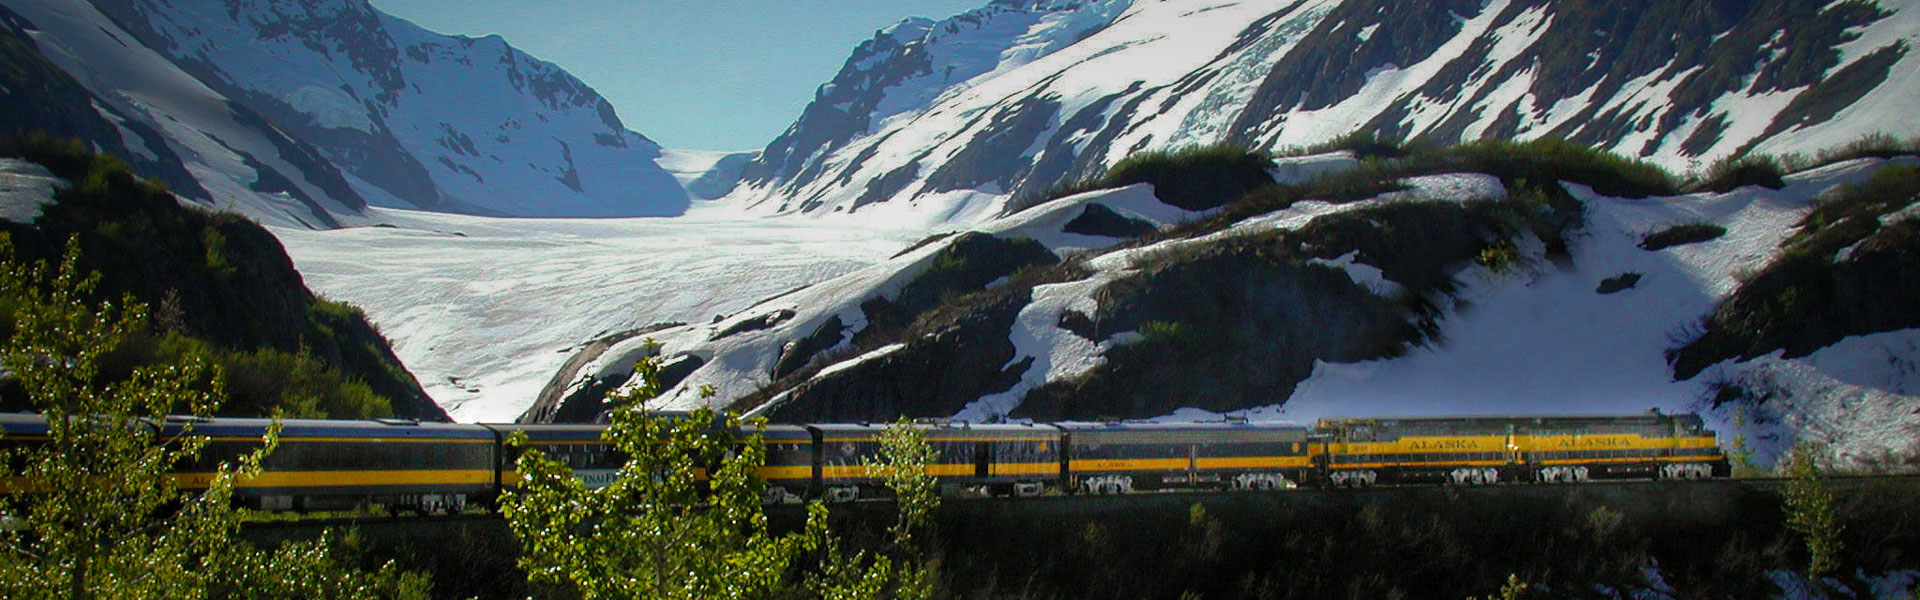 Alaska Train Trips | Alaska Post Cruise Land Tours